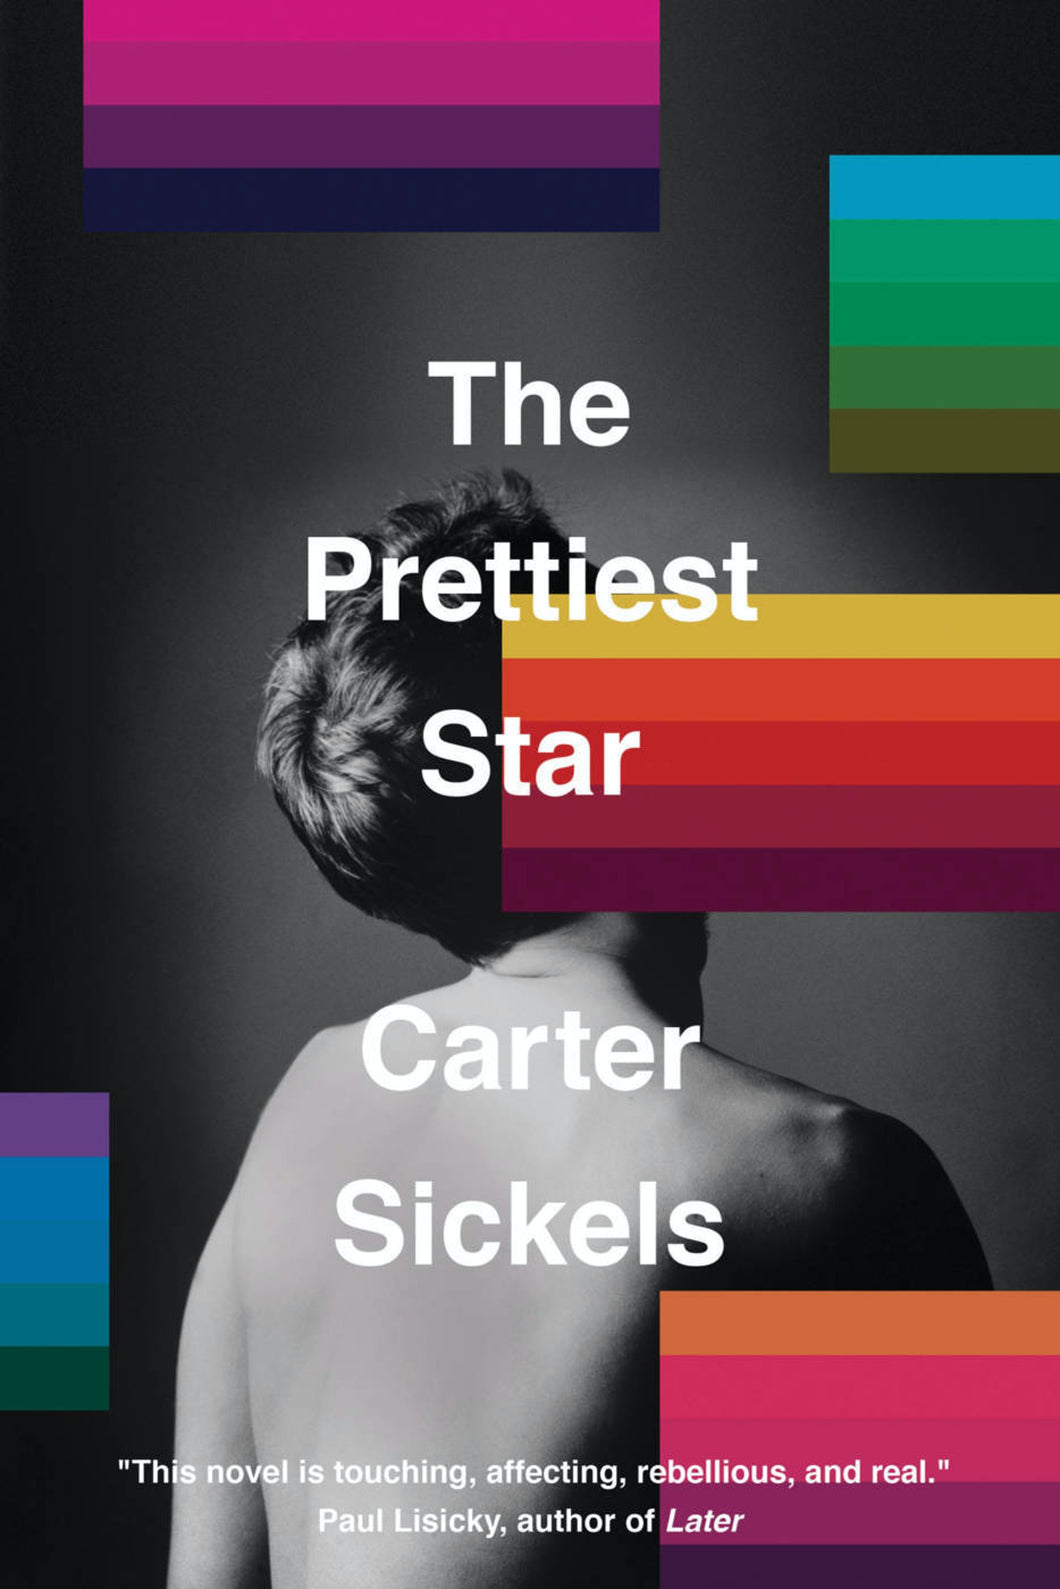 The Prettiest Star by Carter Sickels